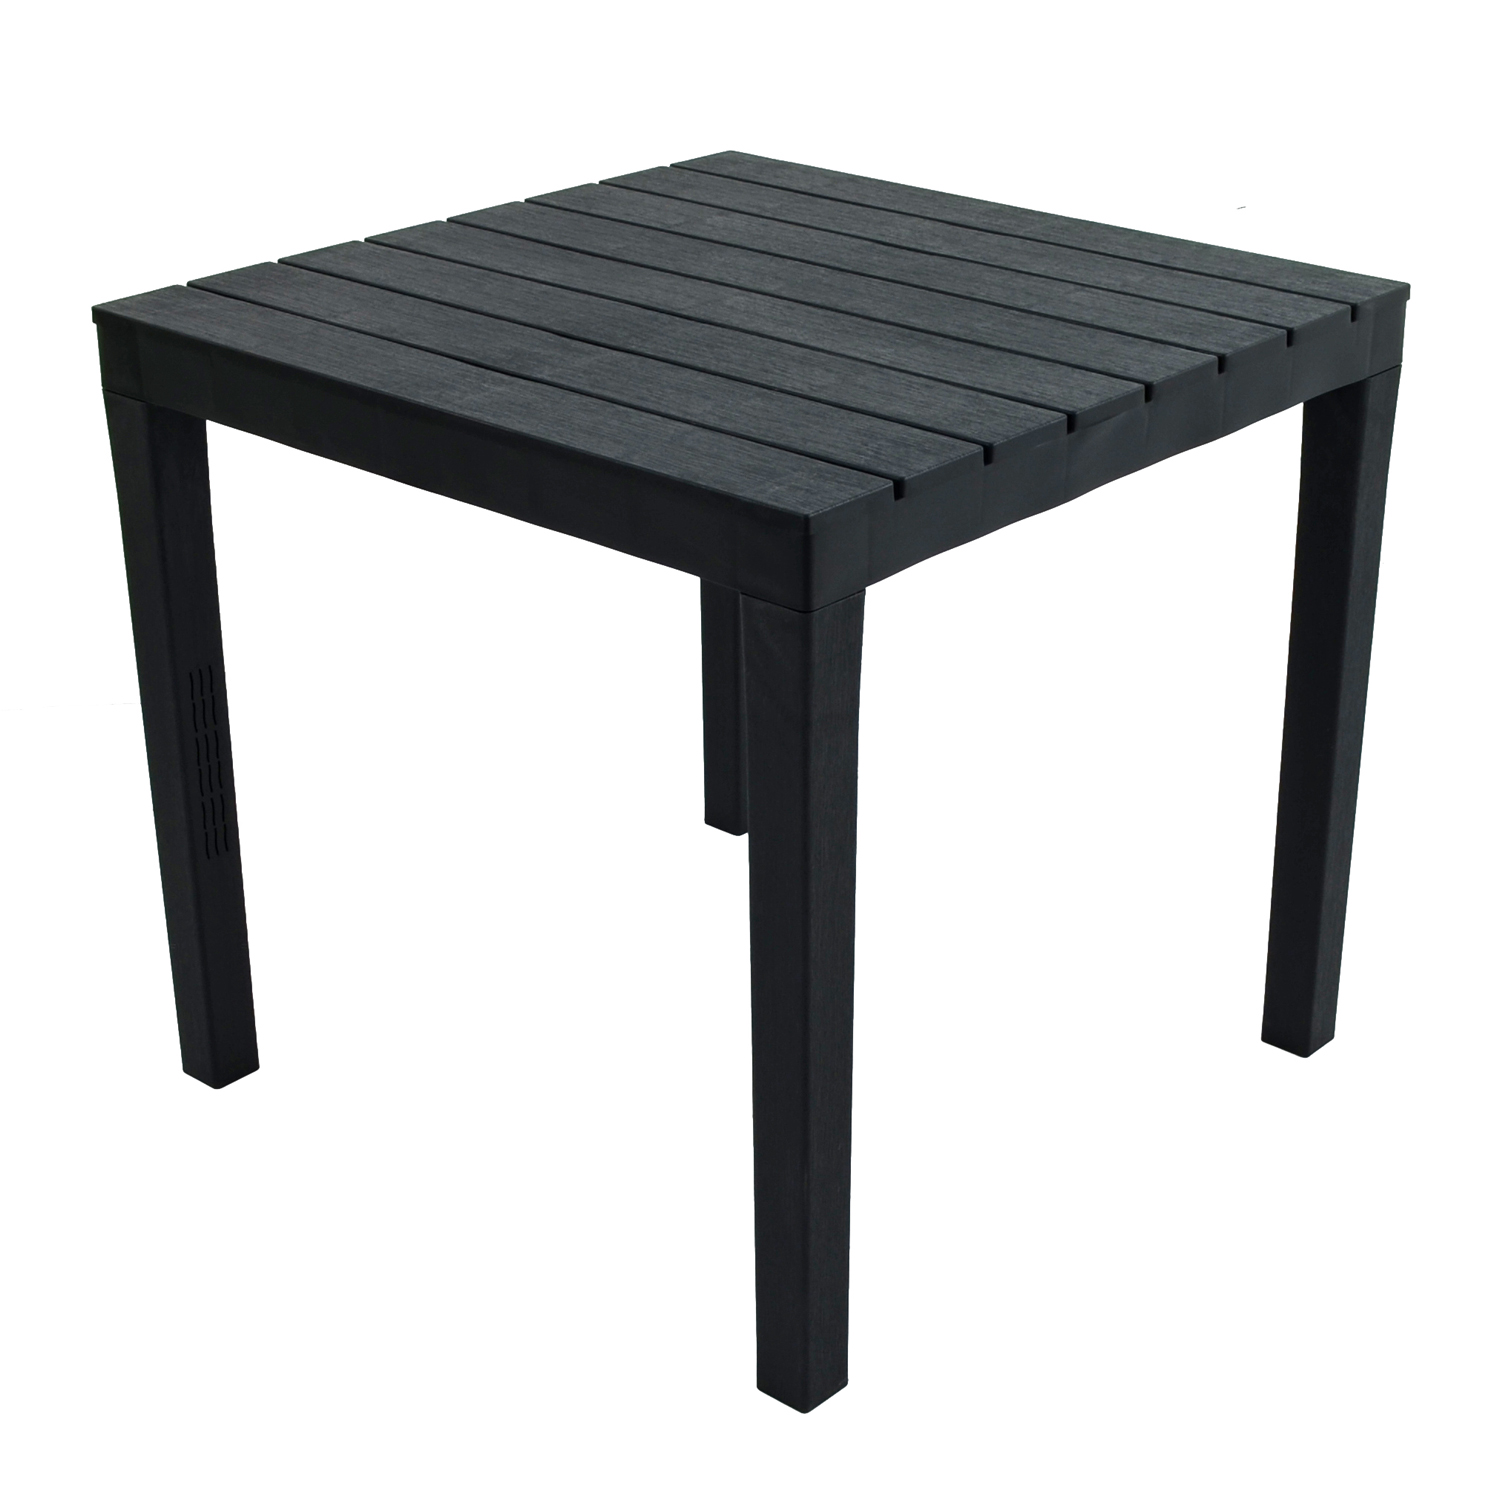 ROMA SQUARE TABLE ANTHRACITE